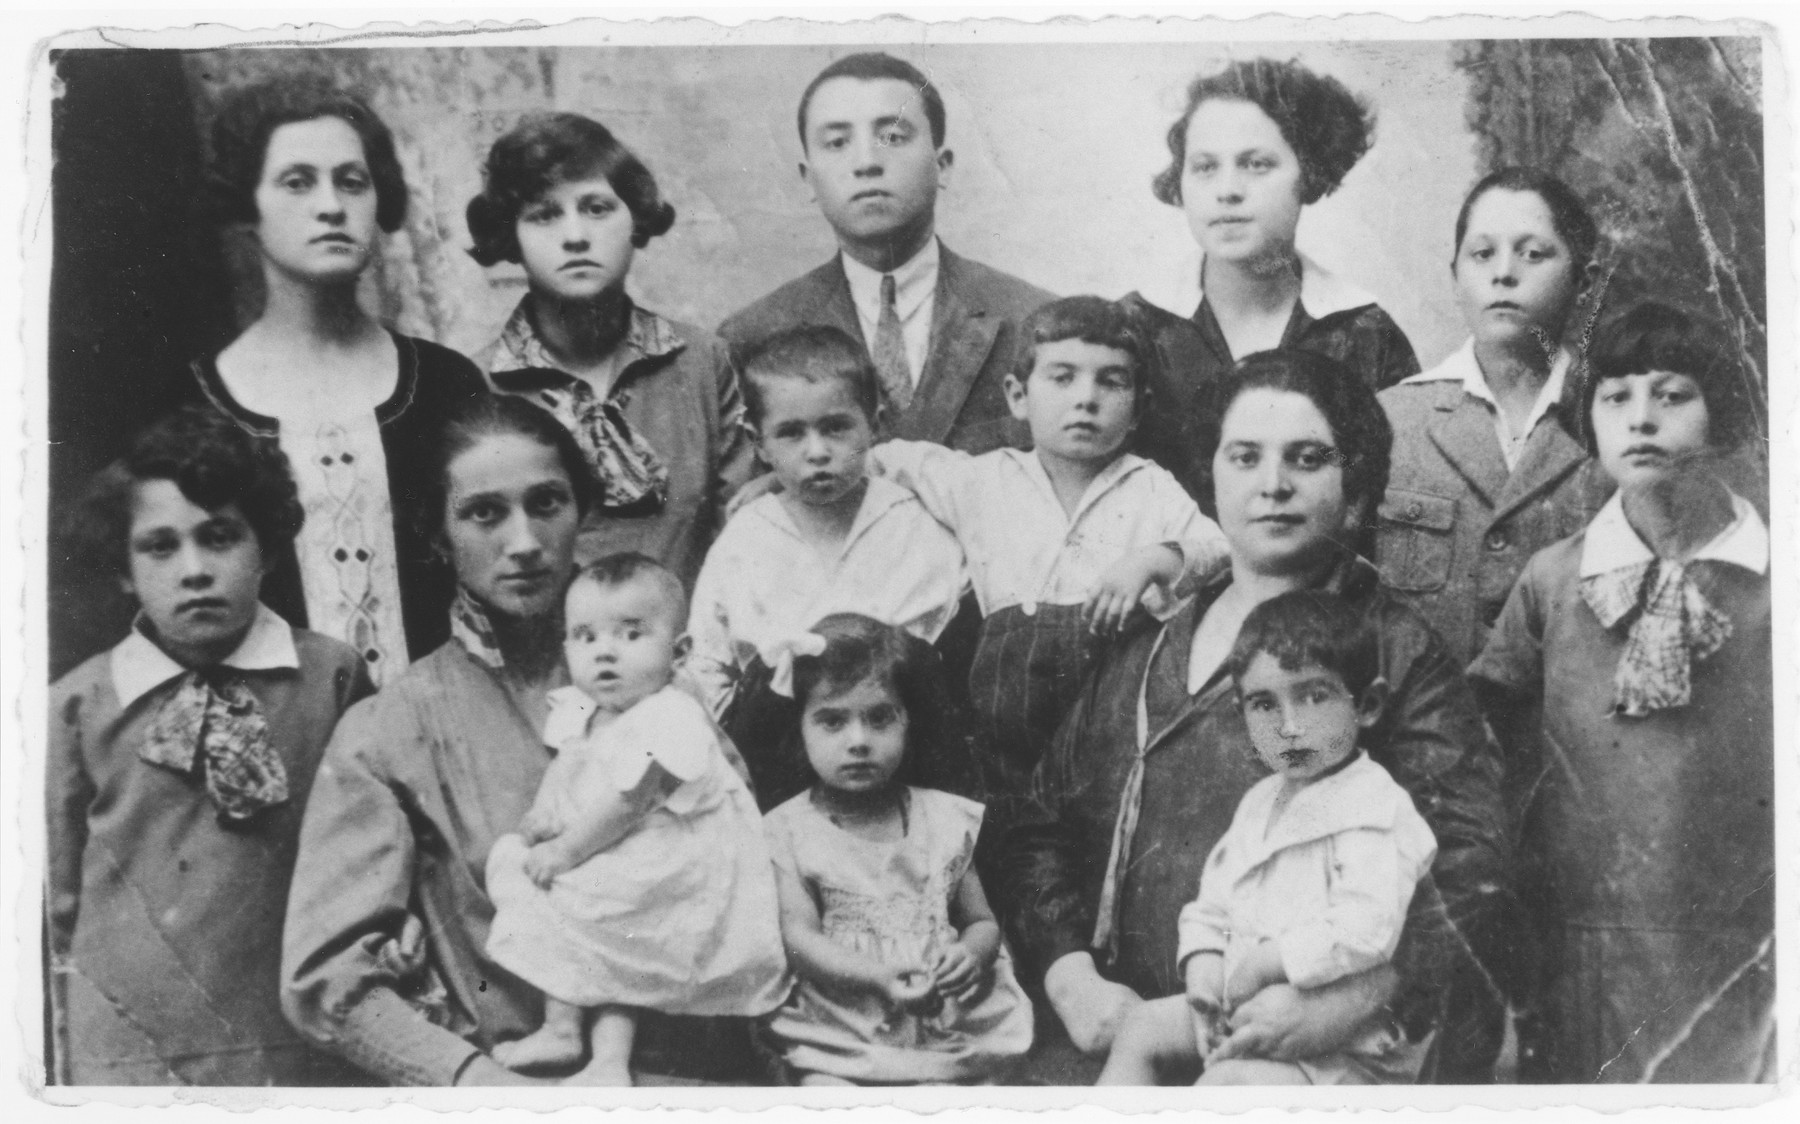 Portrait of the extended Gerstner family in Chrzanow, Poland.